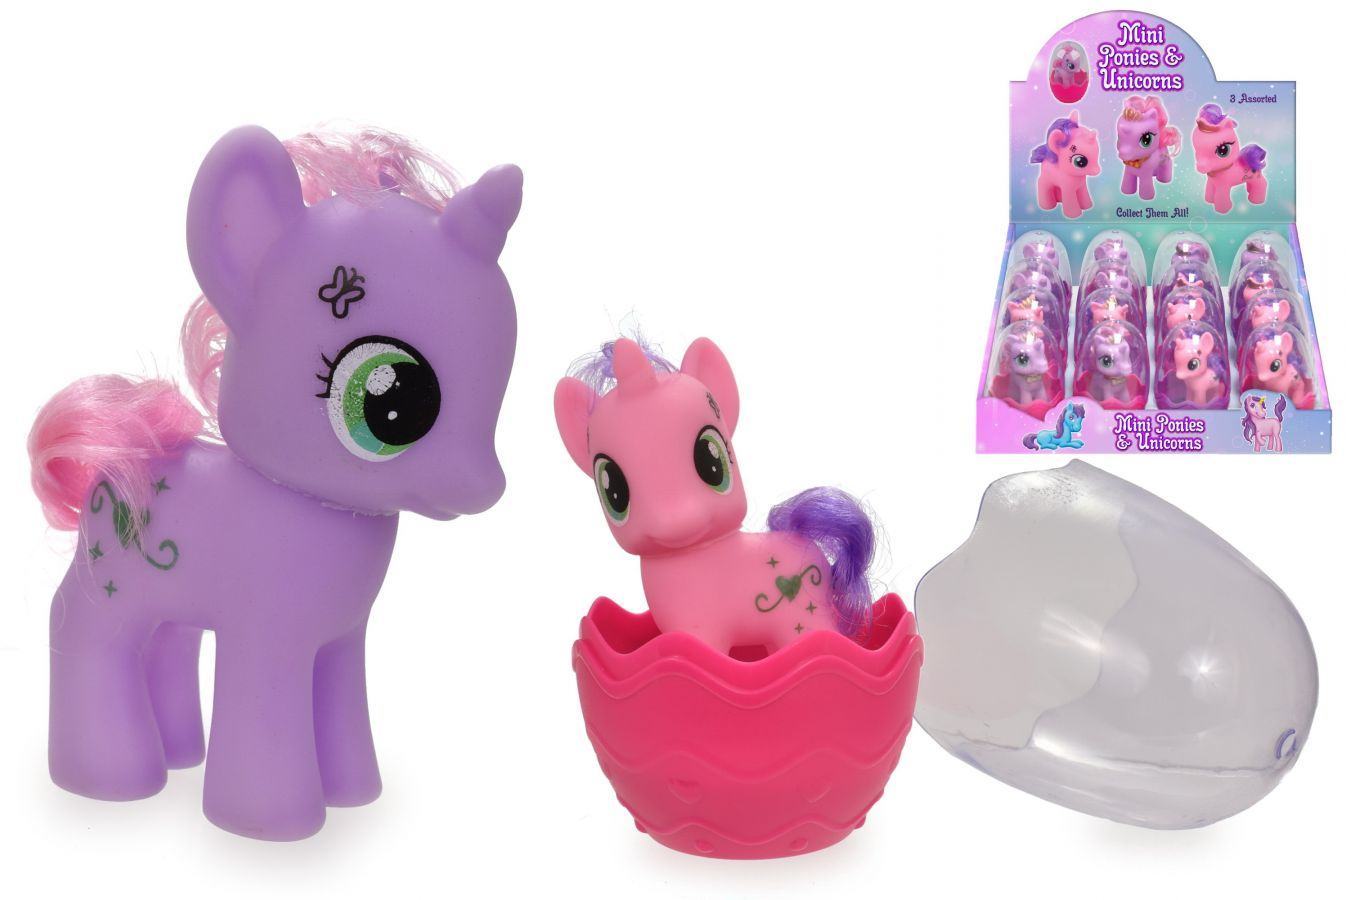 Mini unicorns/ponies (16x display)*